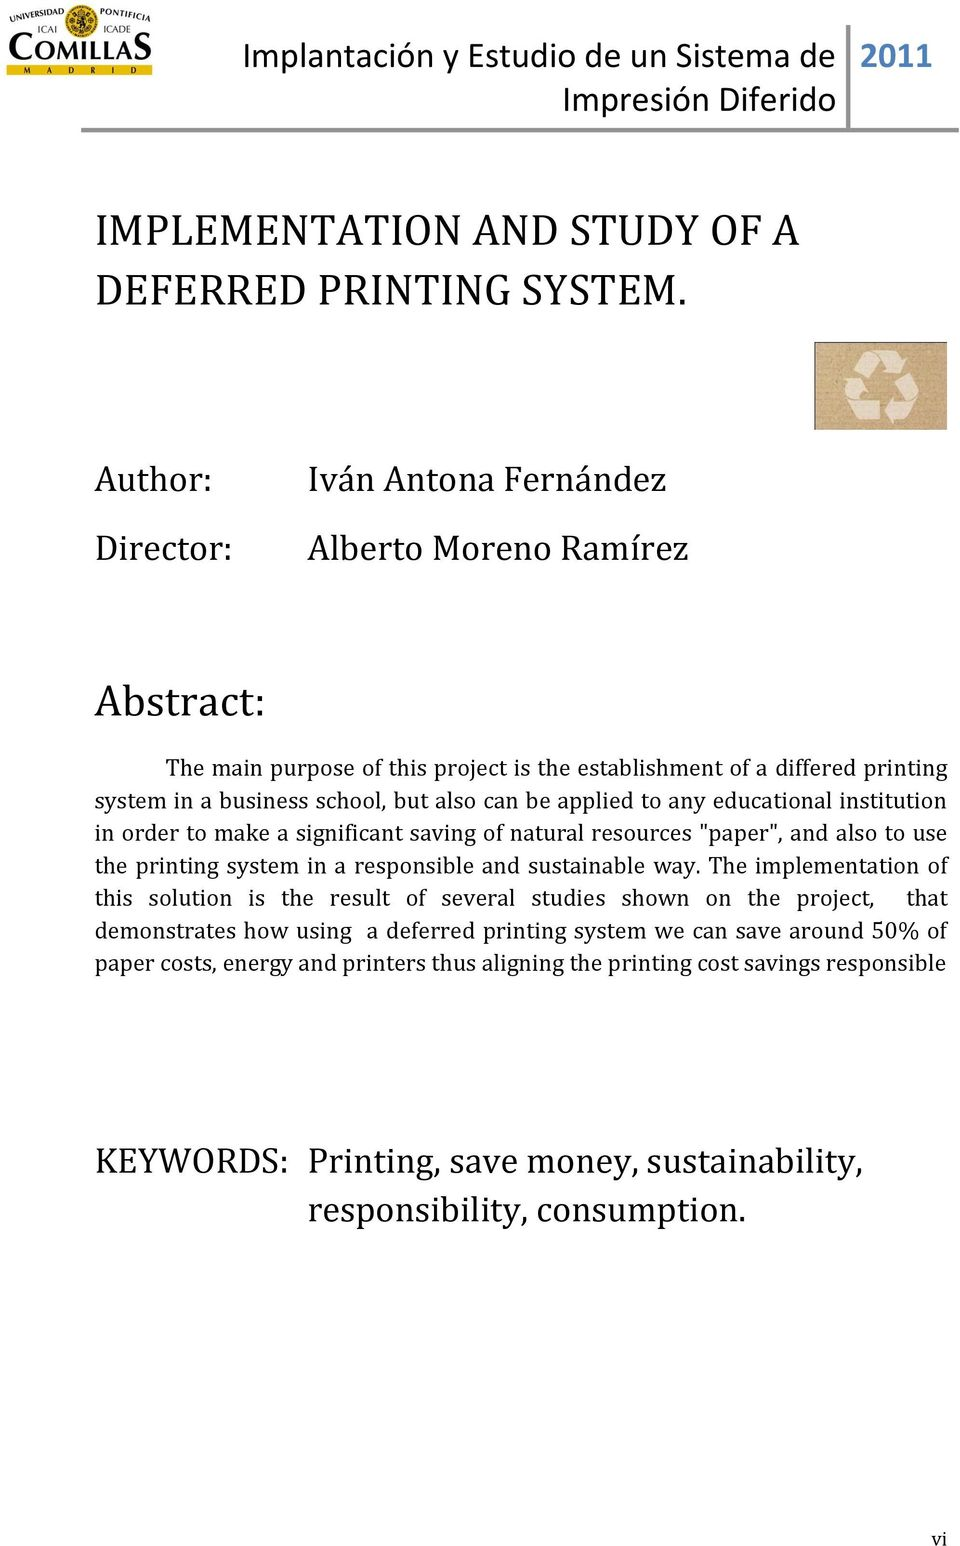 "be applied to any educational institution in order to make a significant saving of natural resources ""paper"", and also to use the printing system in a responsible and sustainable way."